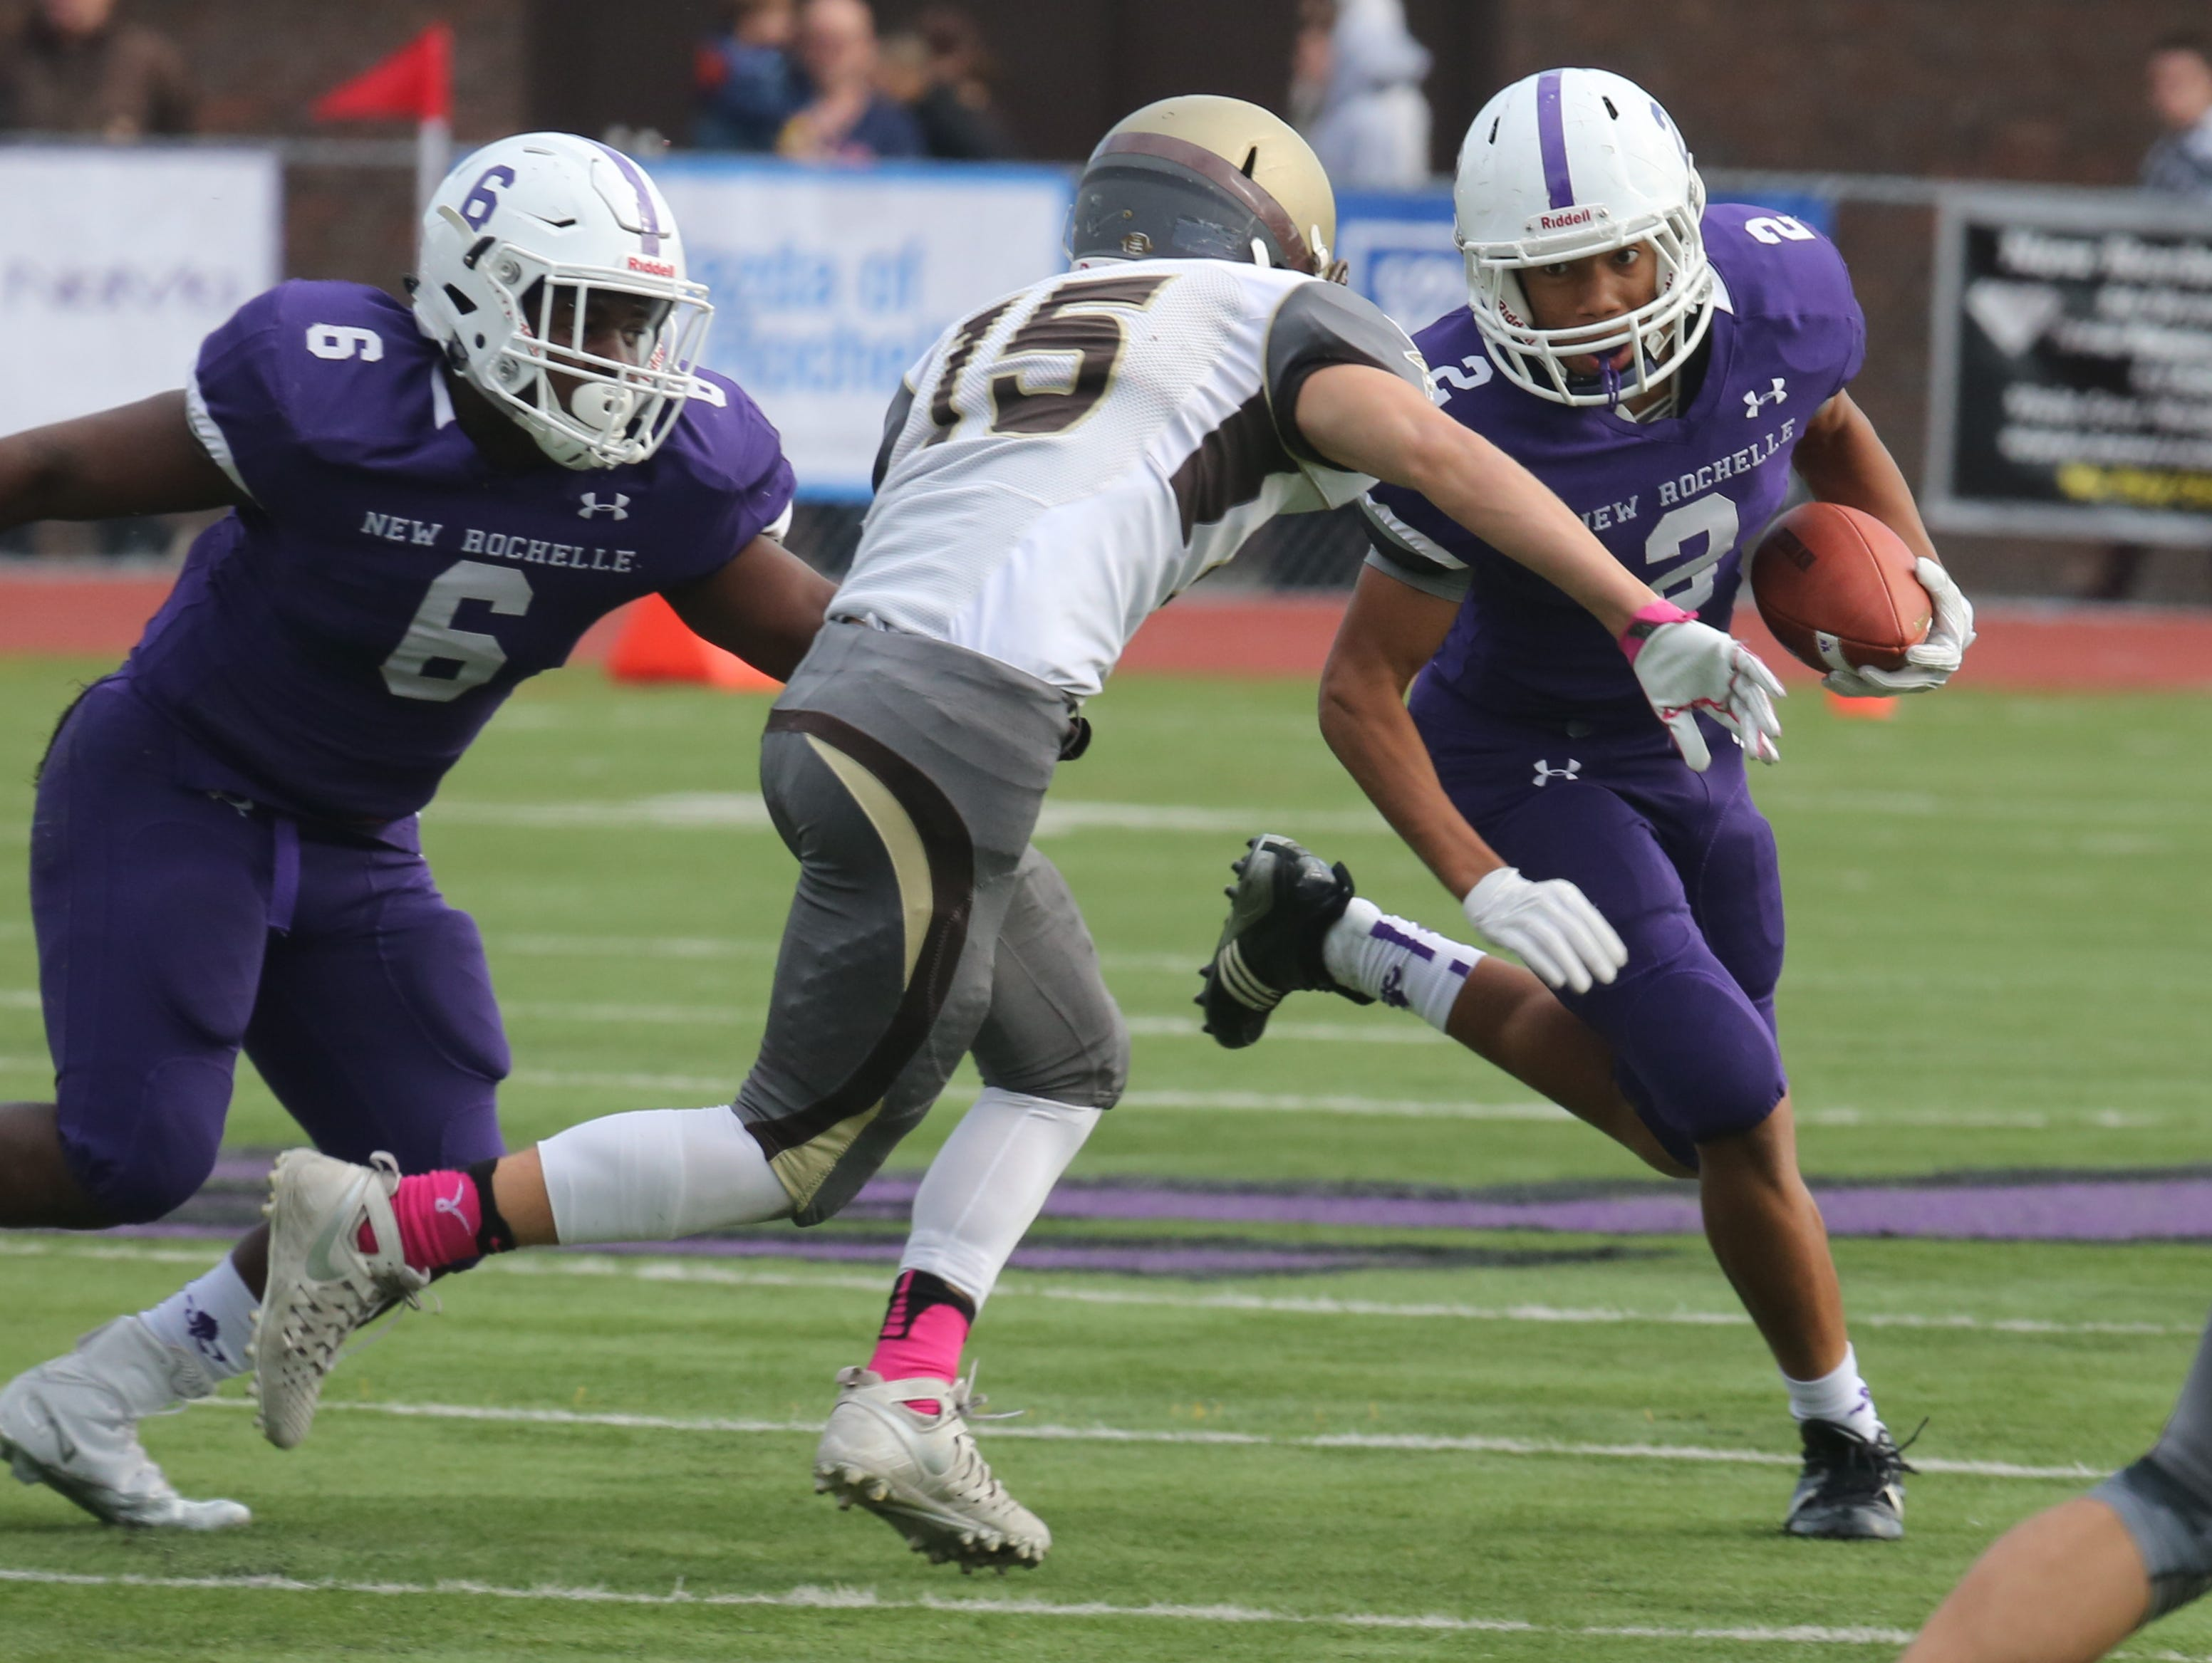 New Rochelle's Romeo Holden is eye to eye with Clarkstown South's Bodhi Gallo during their Class AA semifinal in New Rochelle Oct. 29, 2016.